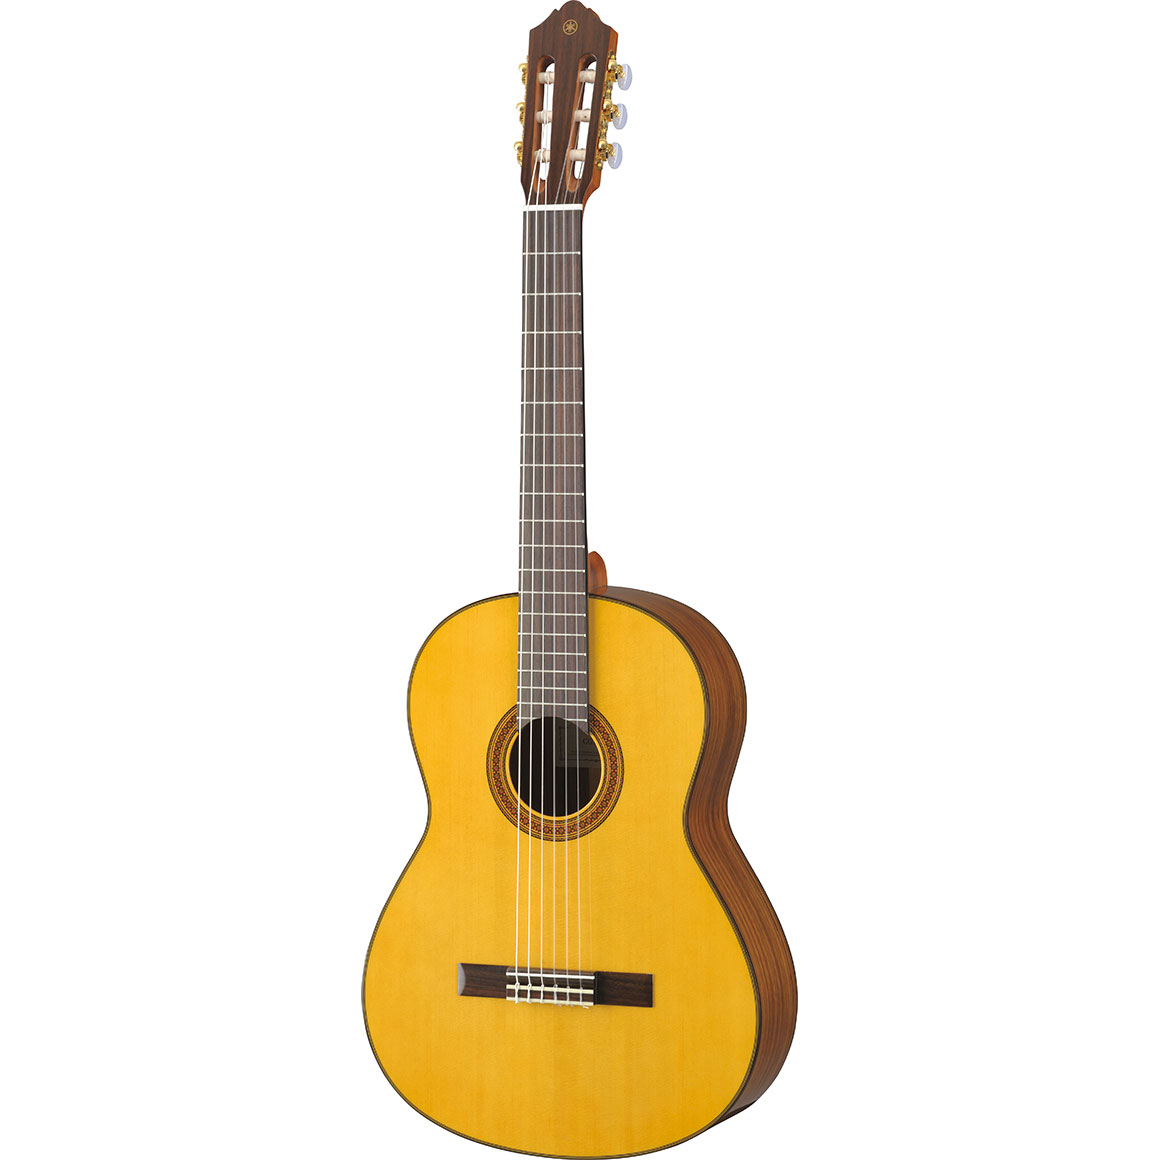 Yamaha CG162S - Intermediate Solid Spruce Top Classical Acoustic Guitar